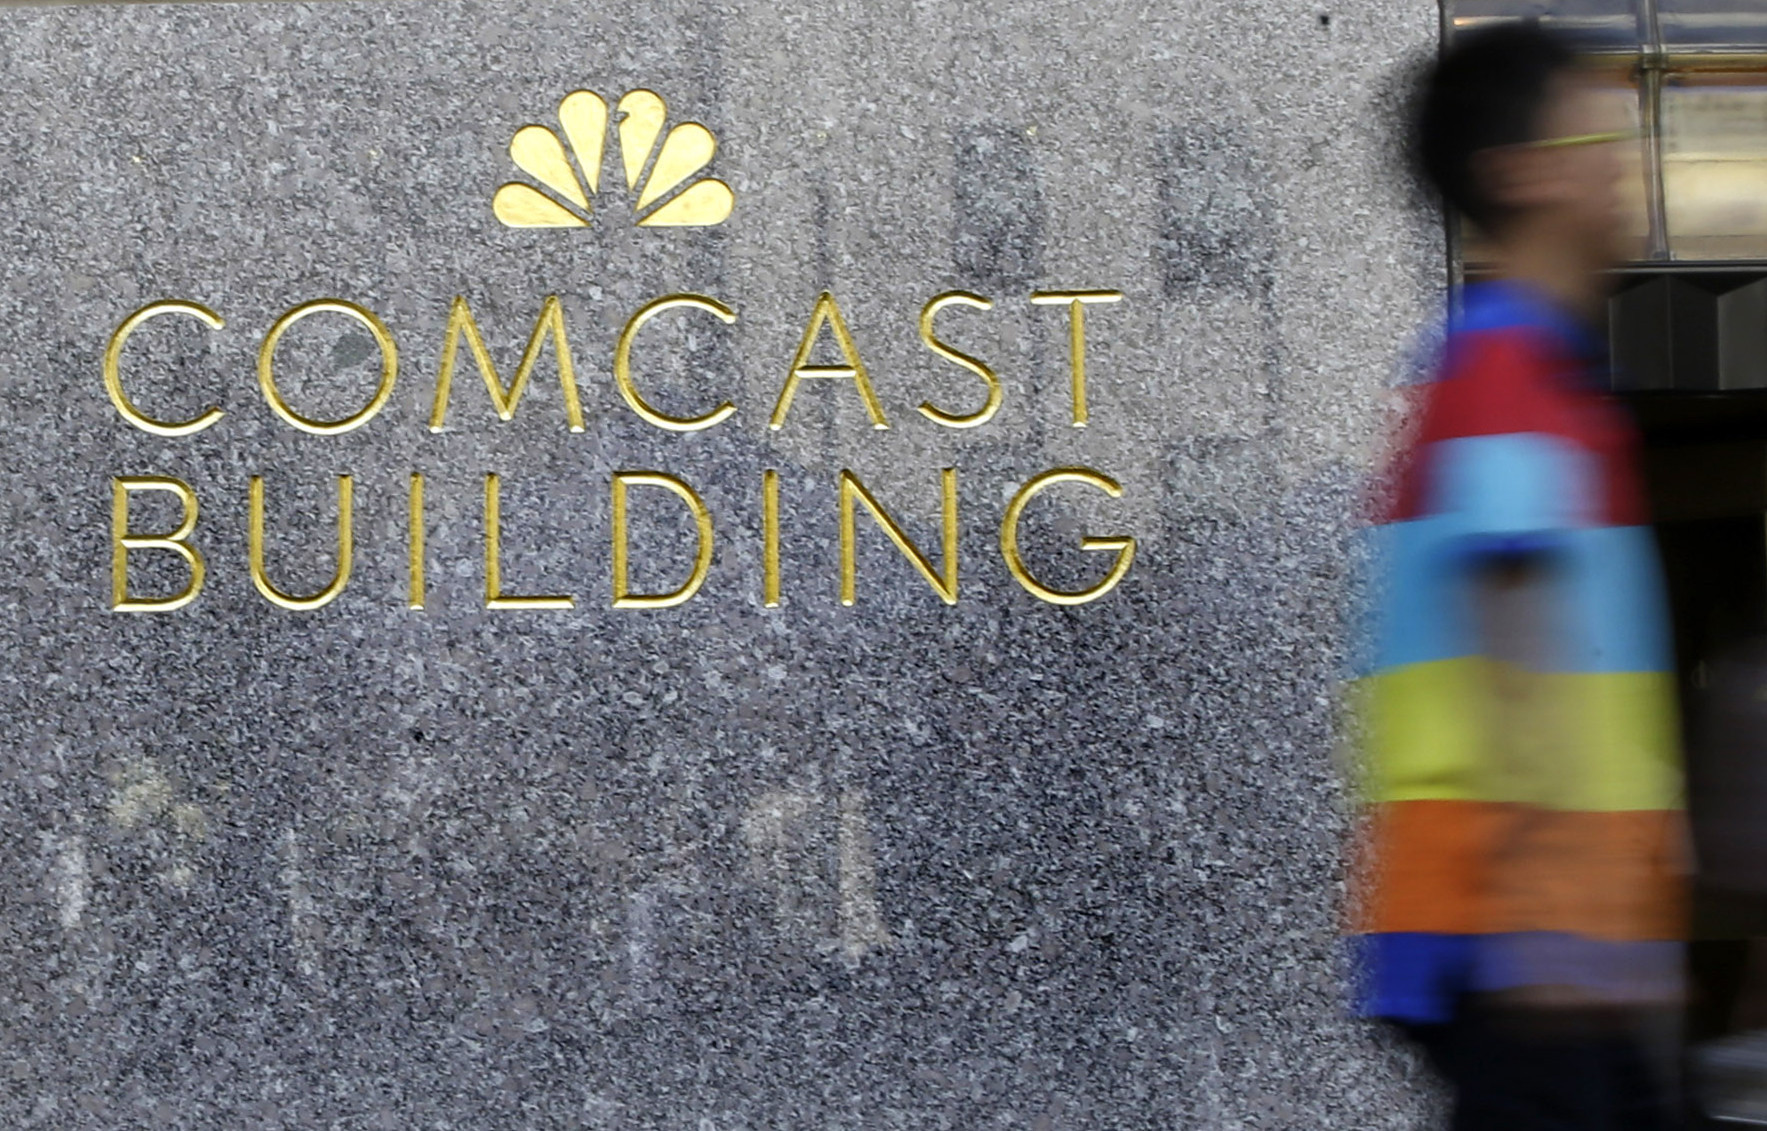 Comcast teeing up new services targeted at millennials - Chicago Tribune